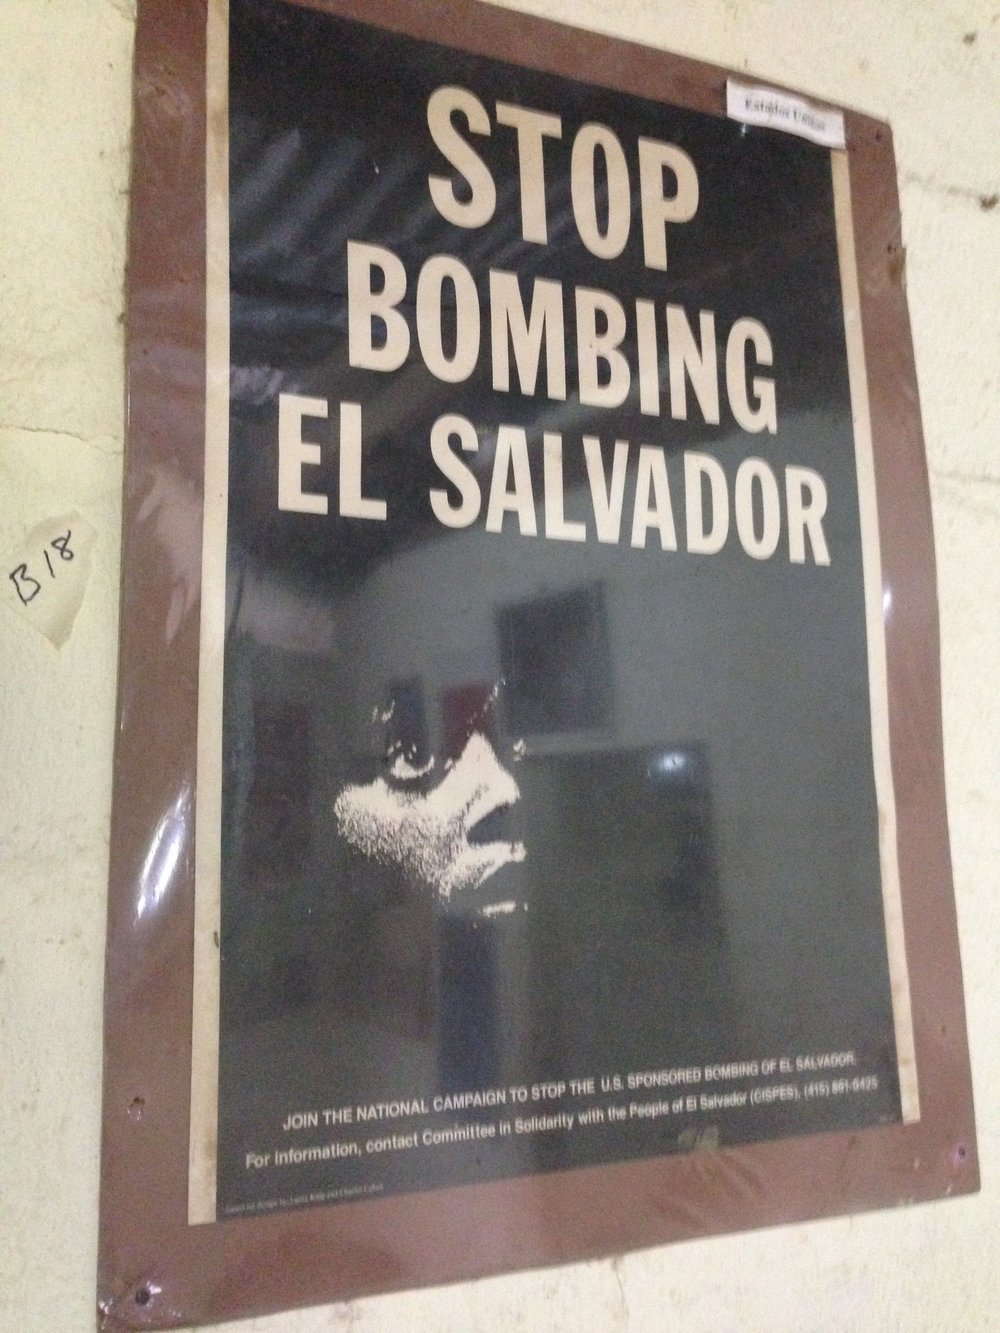 Poster in protest of US sponsored bombing of El Salvador, on display at the Revolution Museum in Perquin.